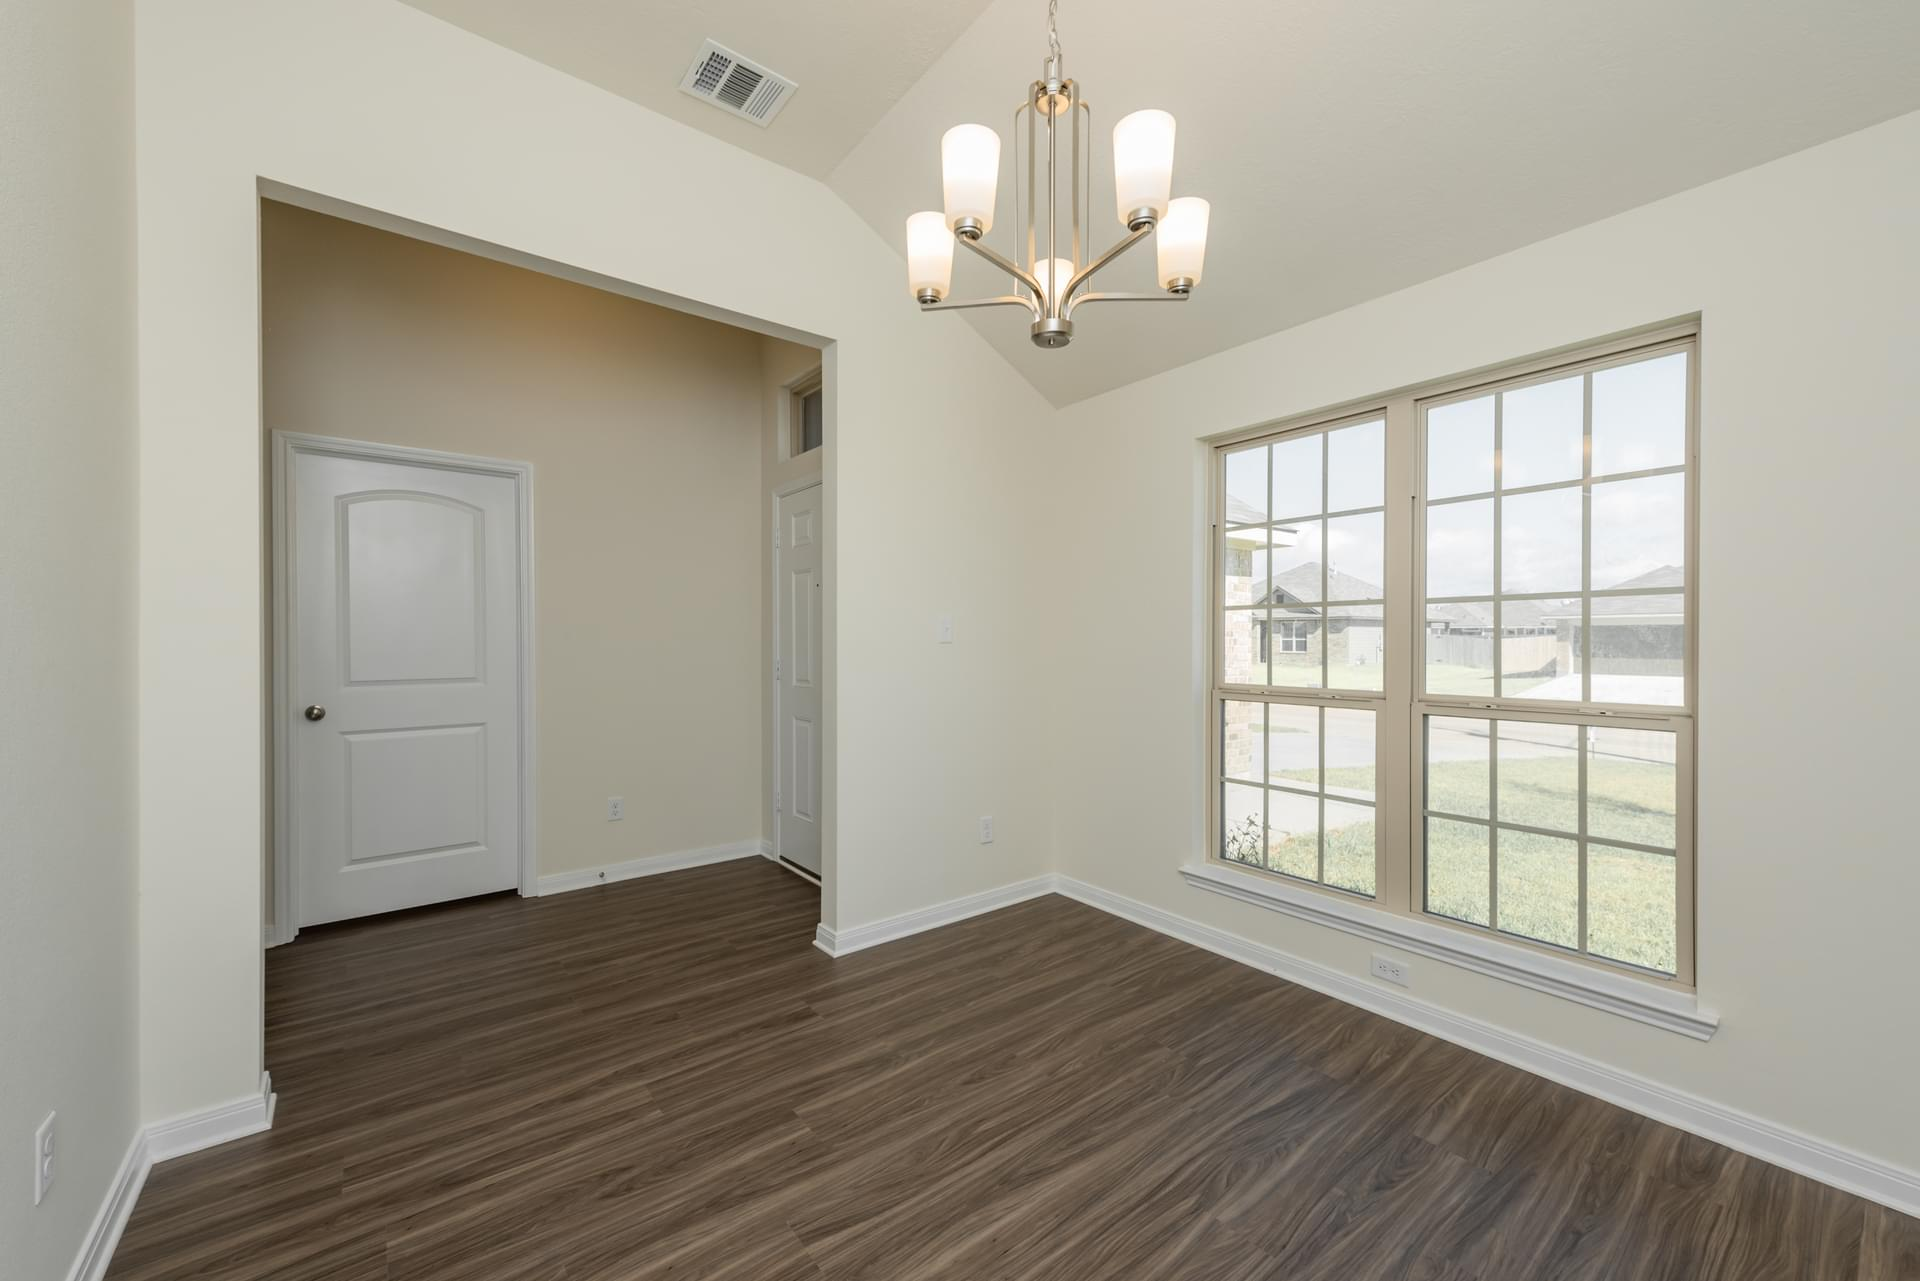 1,448sf New Home in Tomball, TX